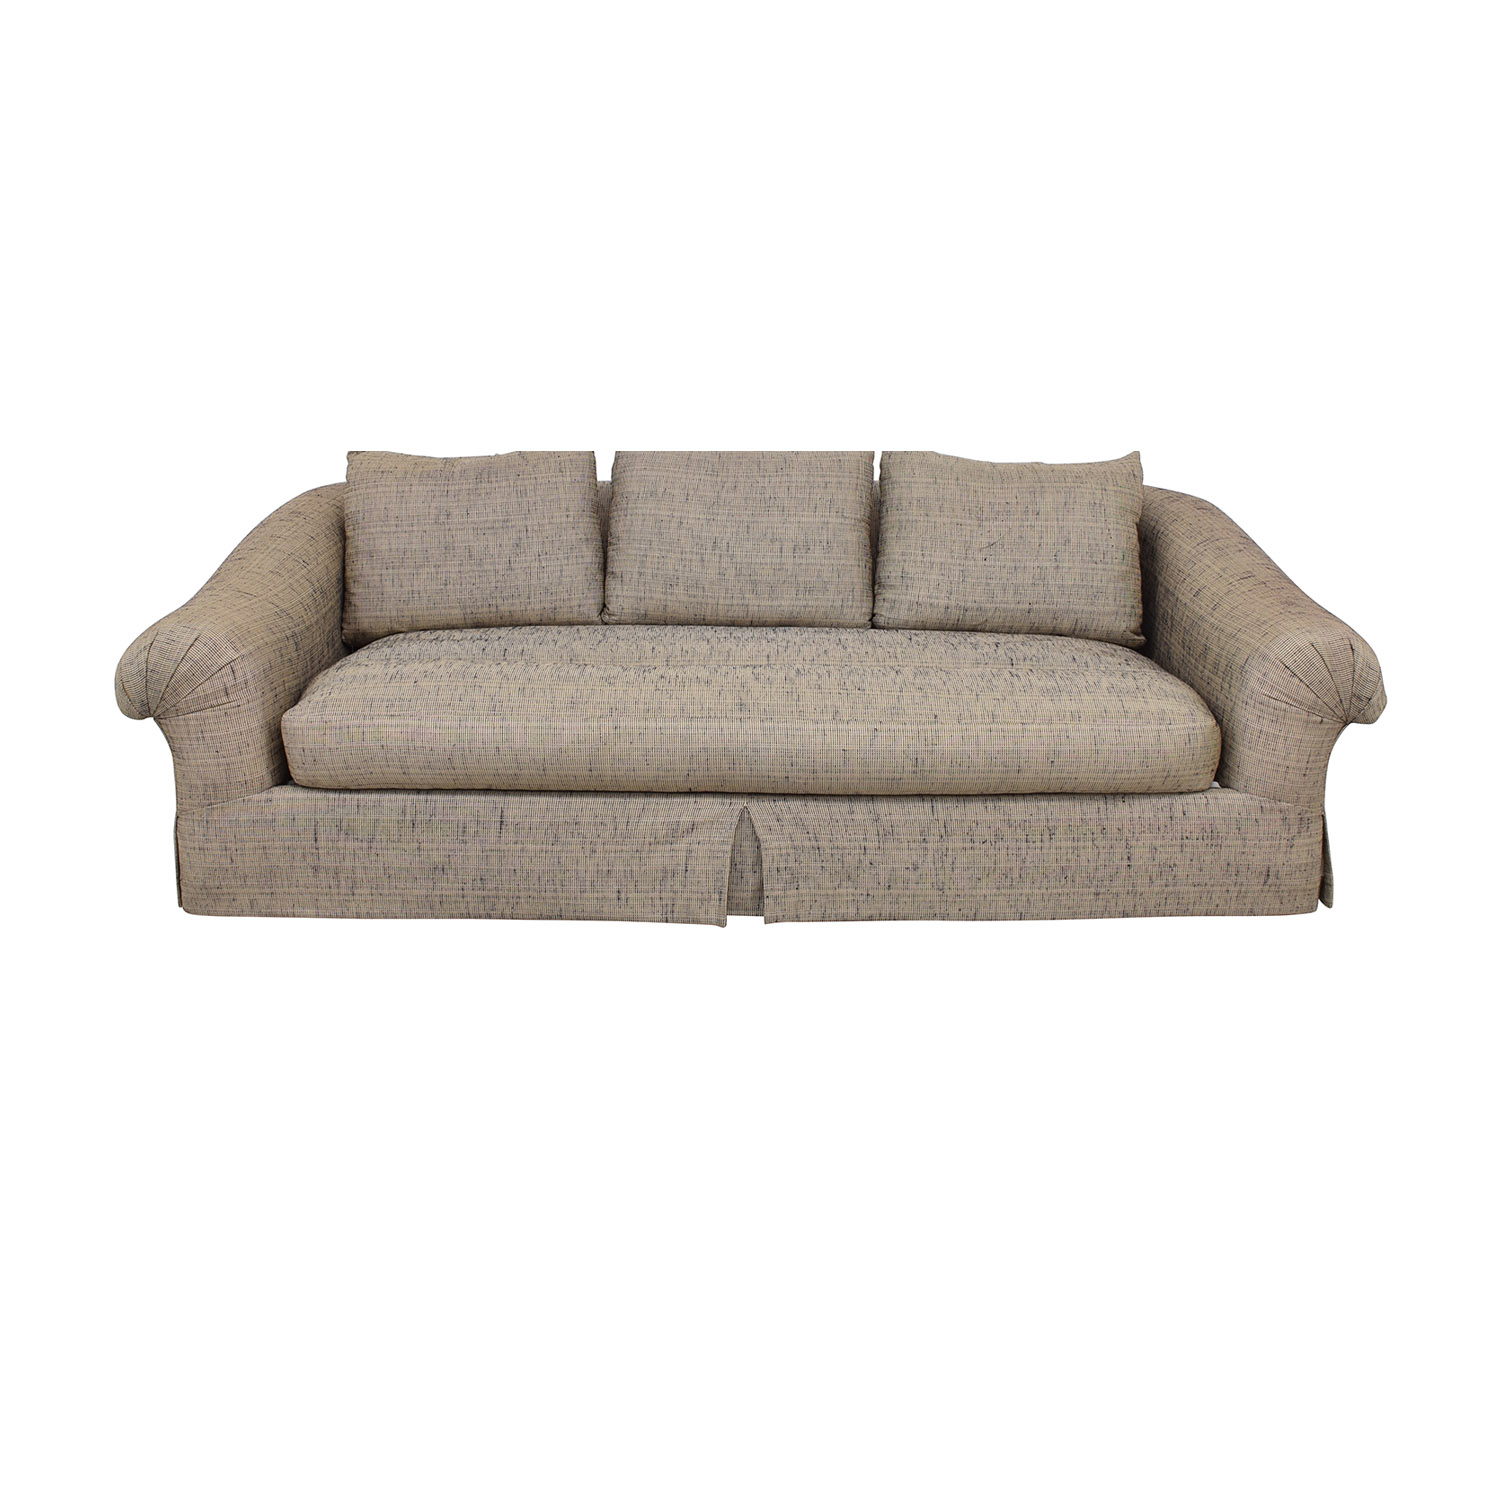 Bernhardt Bernhardt Flair Collection Single Cushion Sofa beige